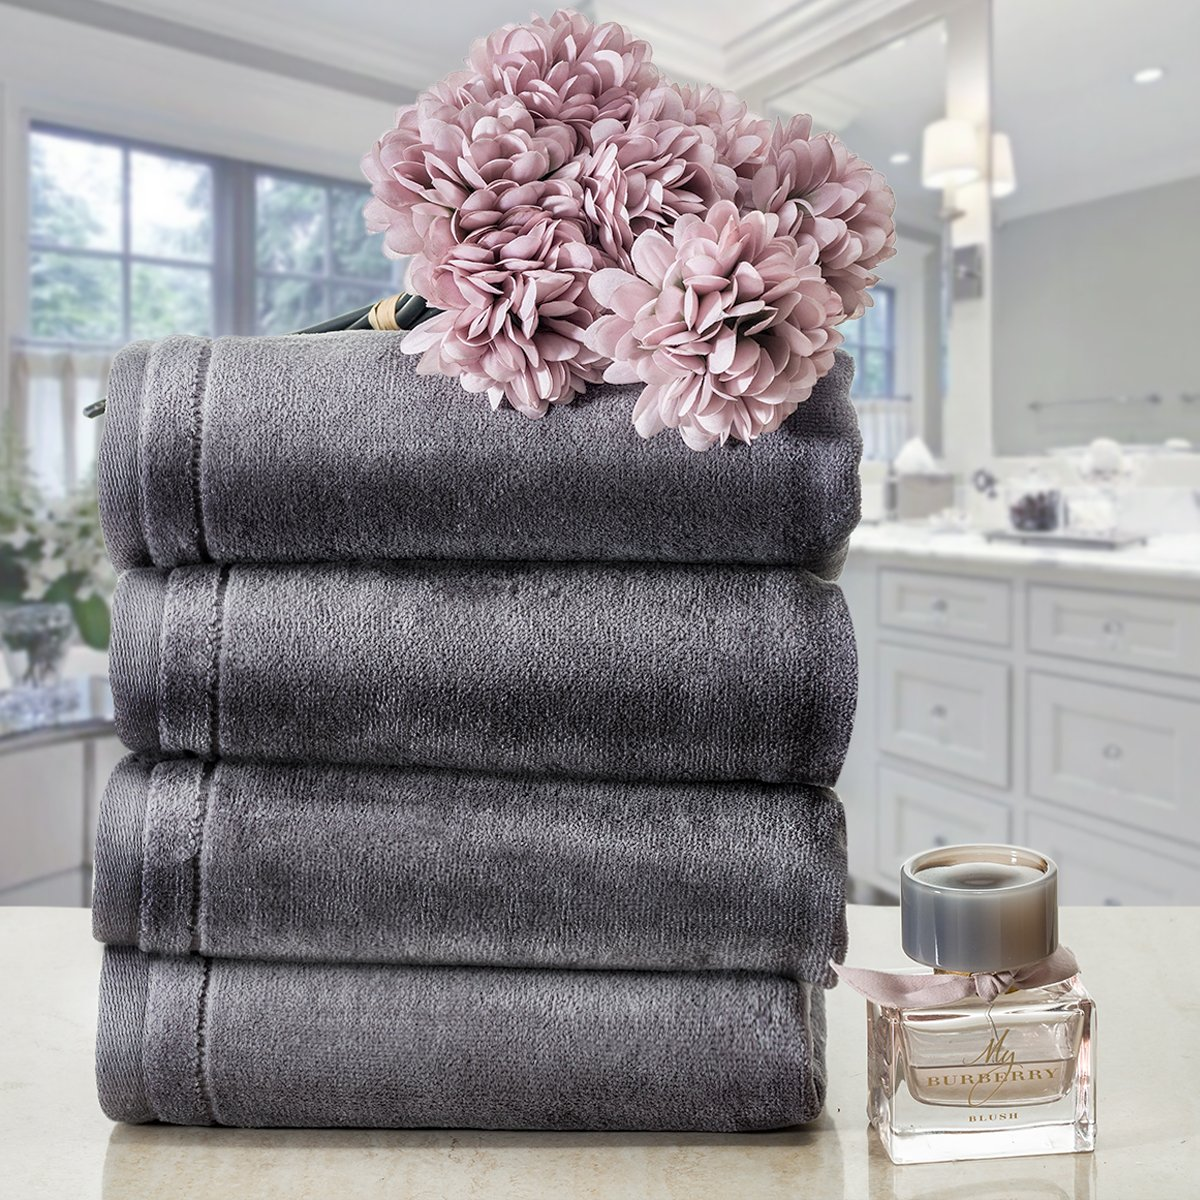 Creative Scents - Luxury Guest Hand Towels